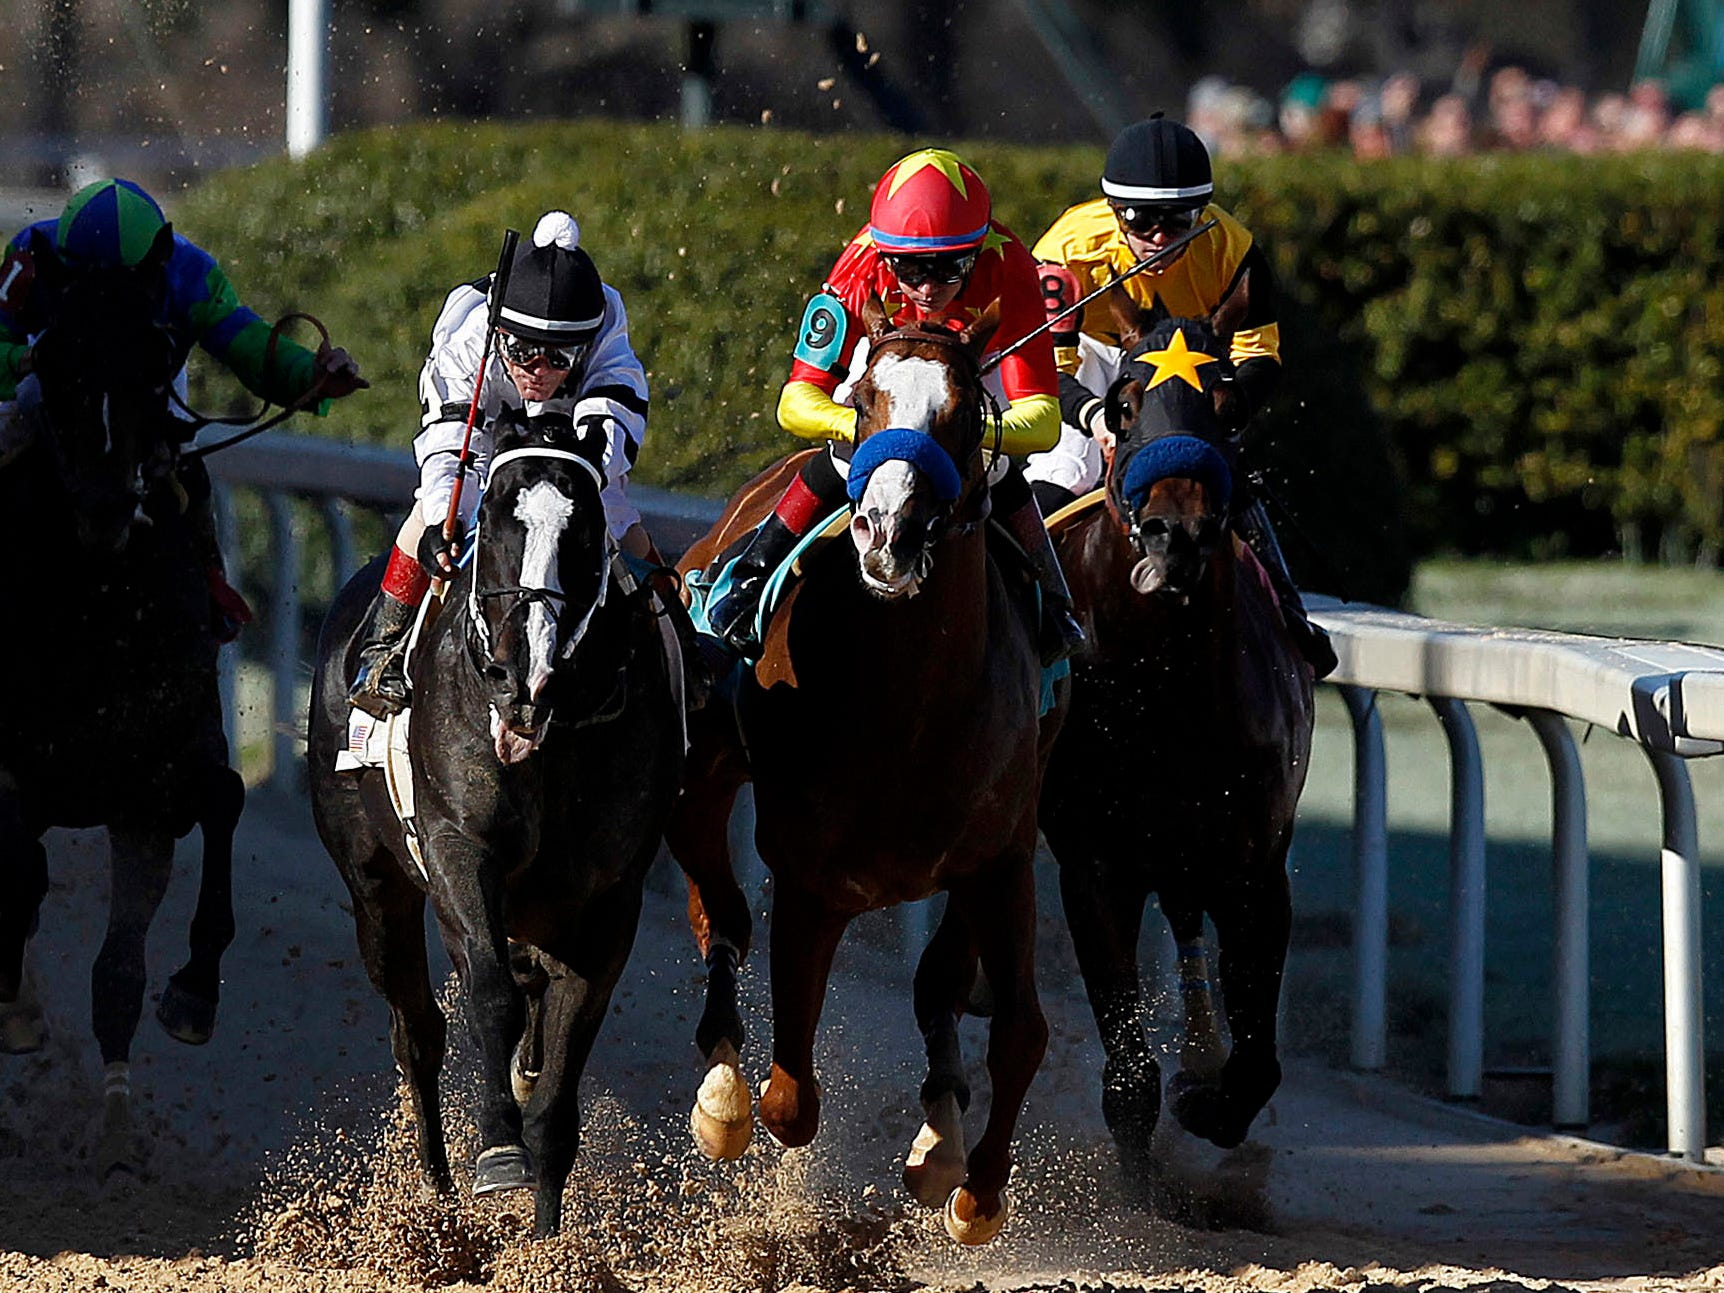 Jockey Jon Court on Long Range Toddy, center, races ahead to beat Improbable ridden by jockey Drayden Van Dyke (9) and Galilean ridden by jockey Flavien Prat (8), to win the first division of the Rebel Stakes  horse race, Saturday, March 16, 2019, at Oaklawn Park in Hot Springs, Ark.